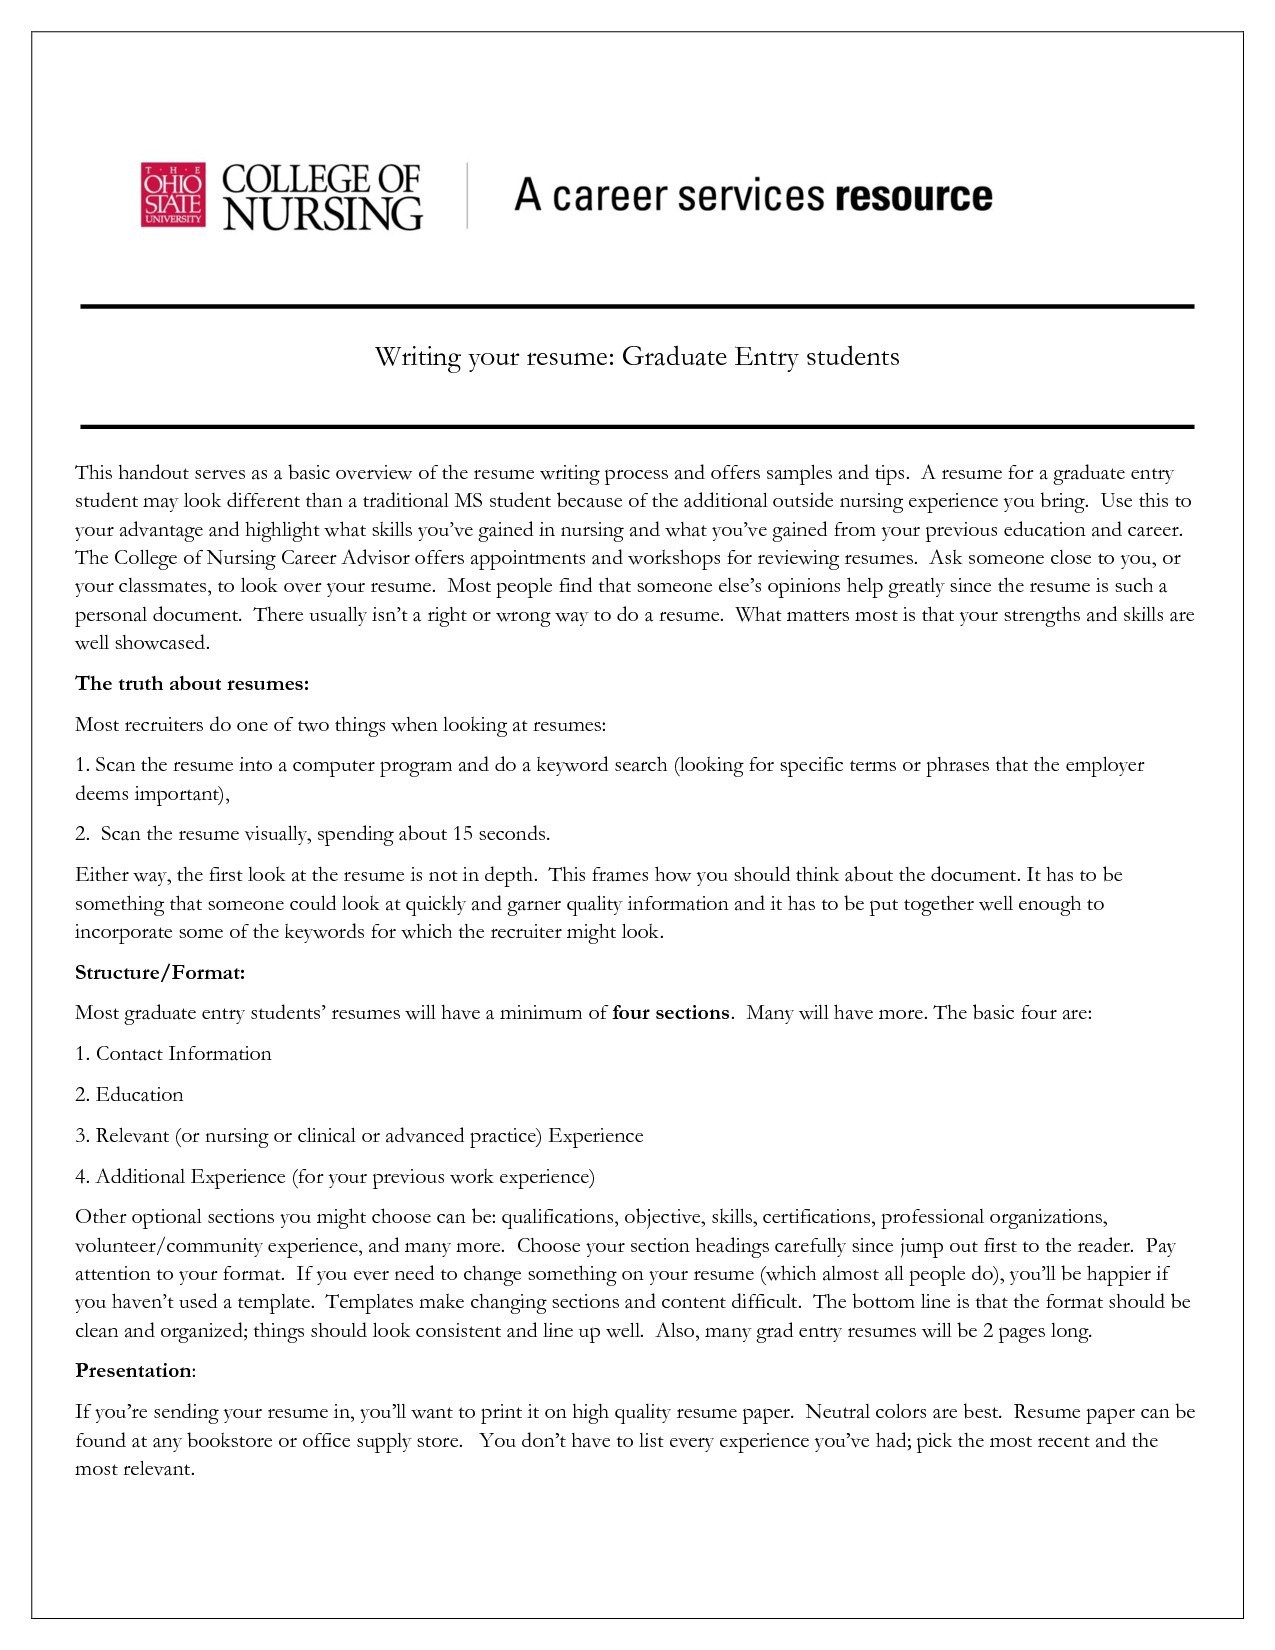 New Graduate Nurse Practitioner Resume Template - Nurse Practitioner Resume Examples Inspirational Sample Resume for